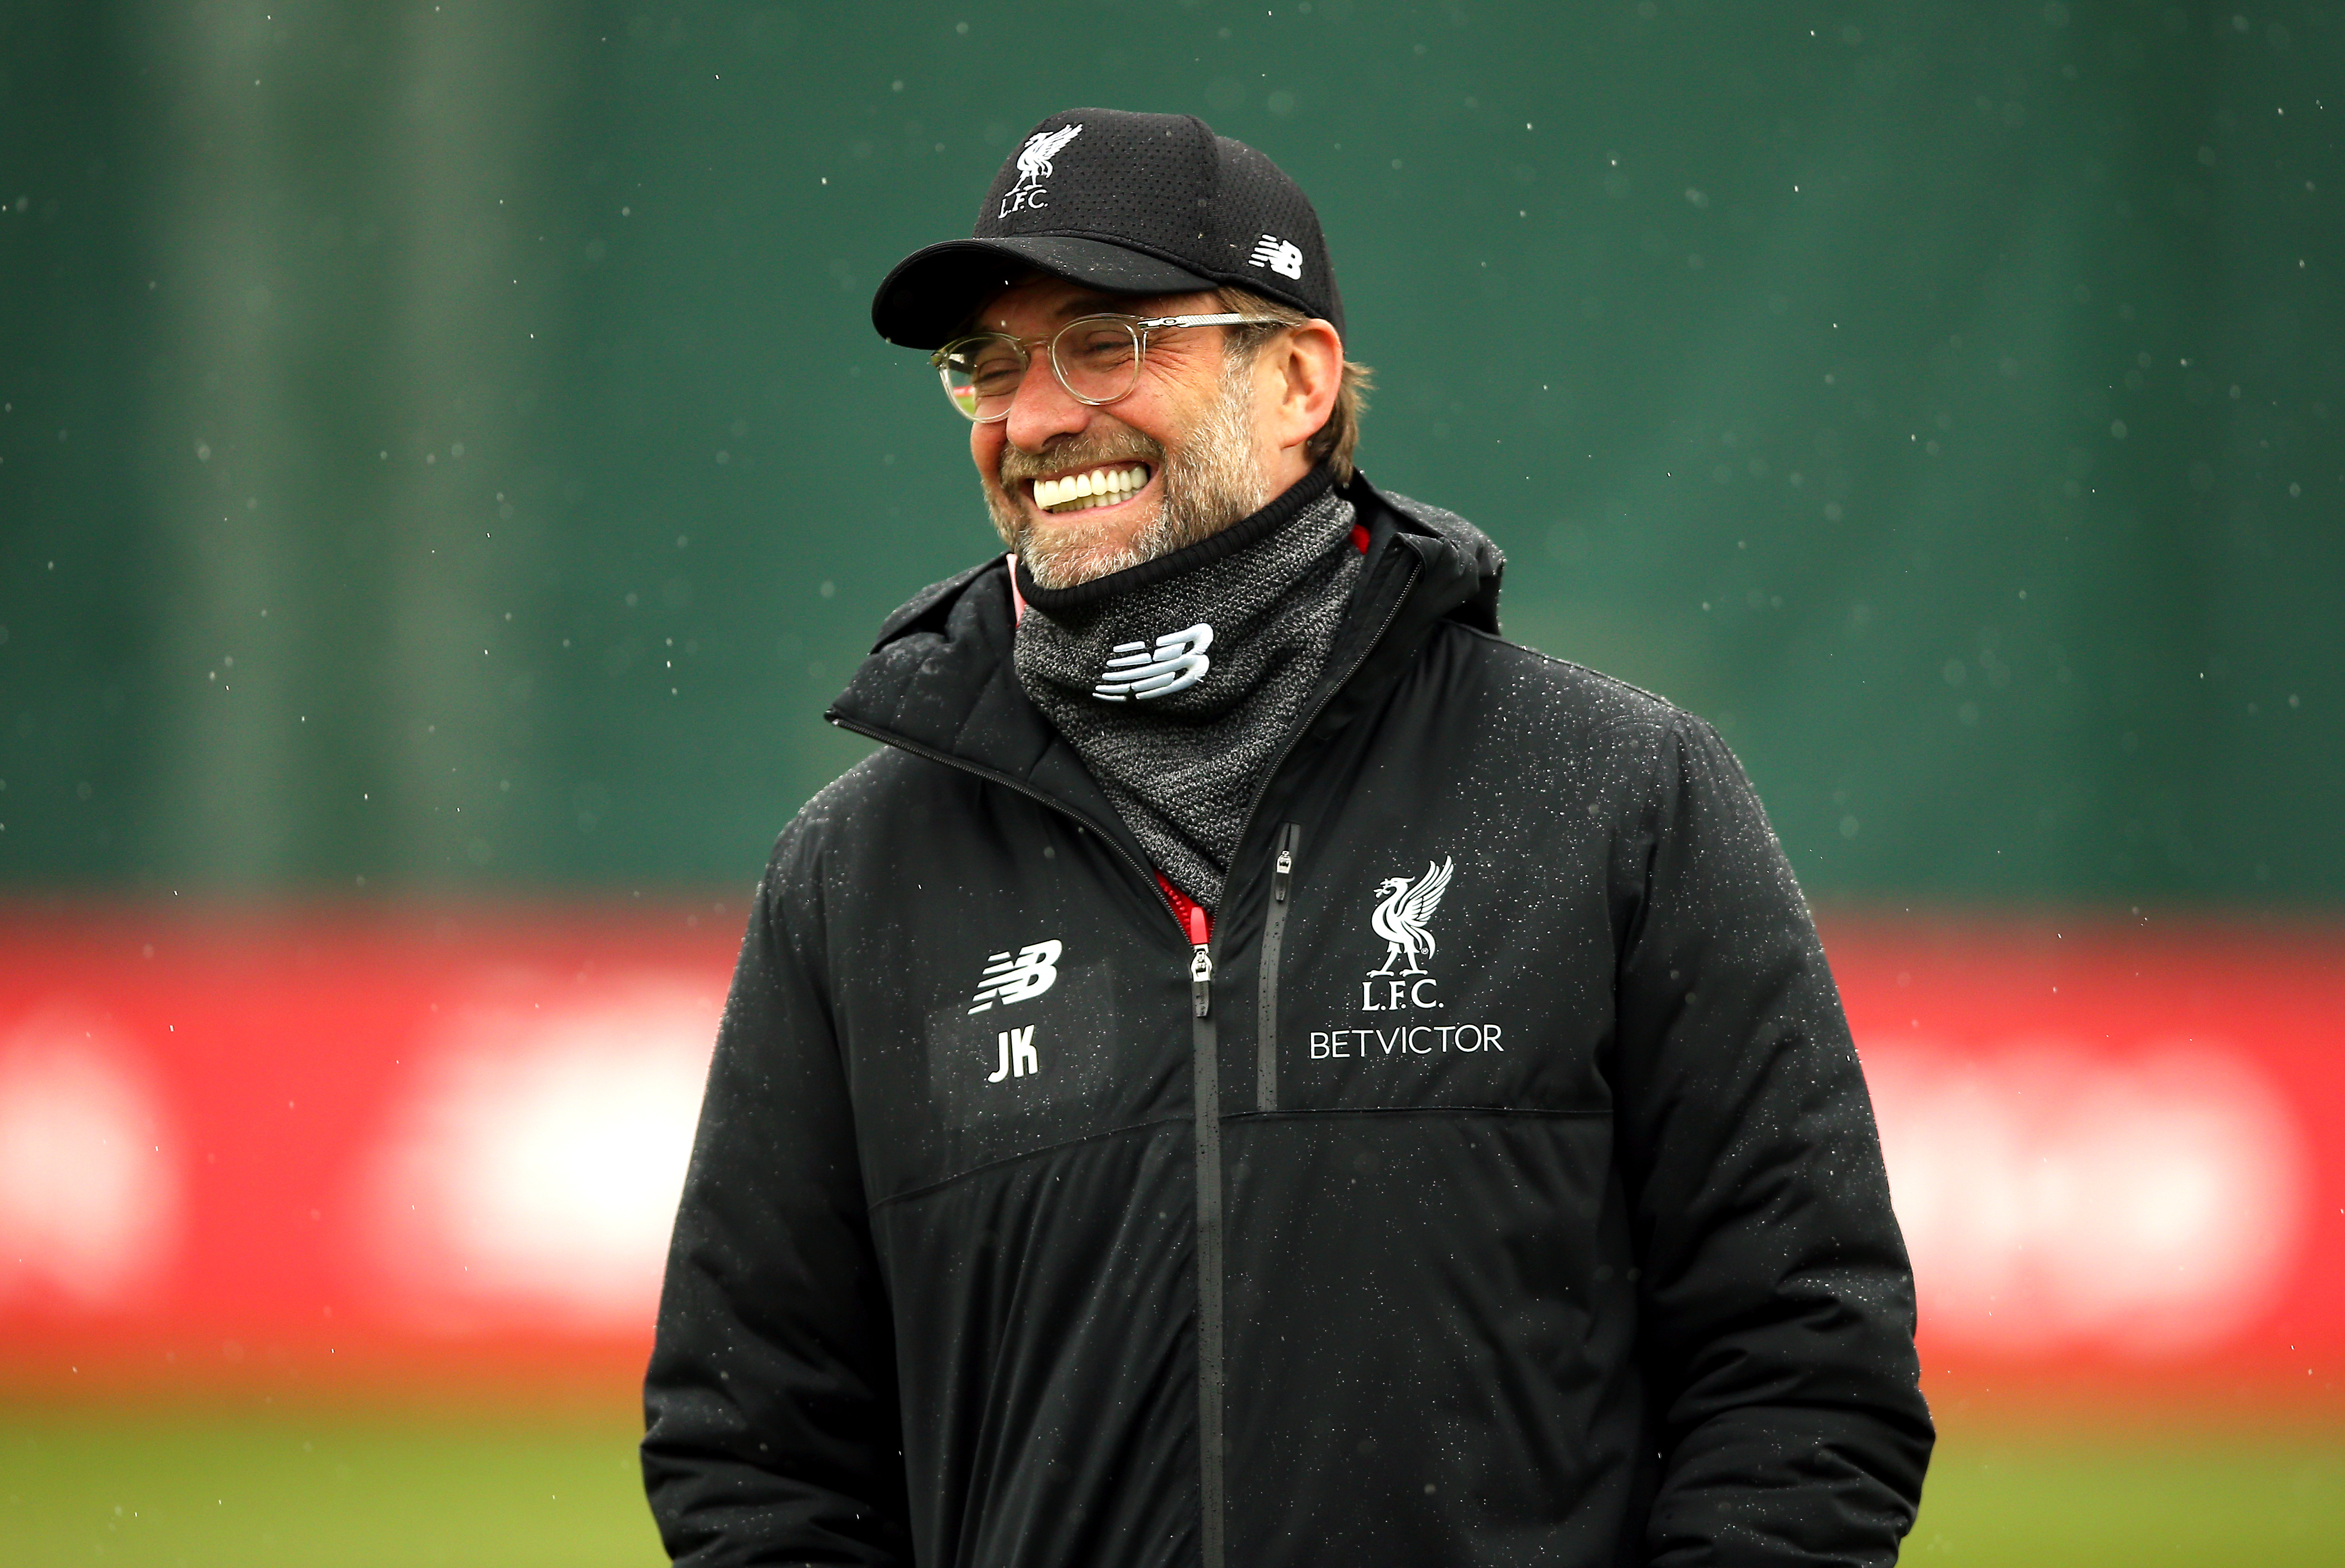 Klopp will be very happy to hear he's annoying United fans. Image: PA Images